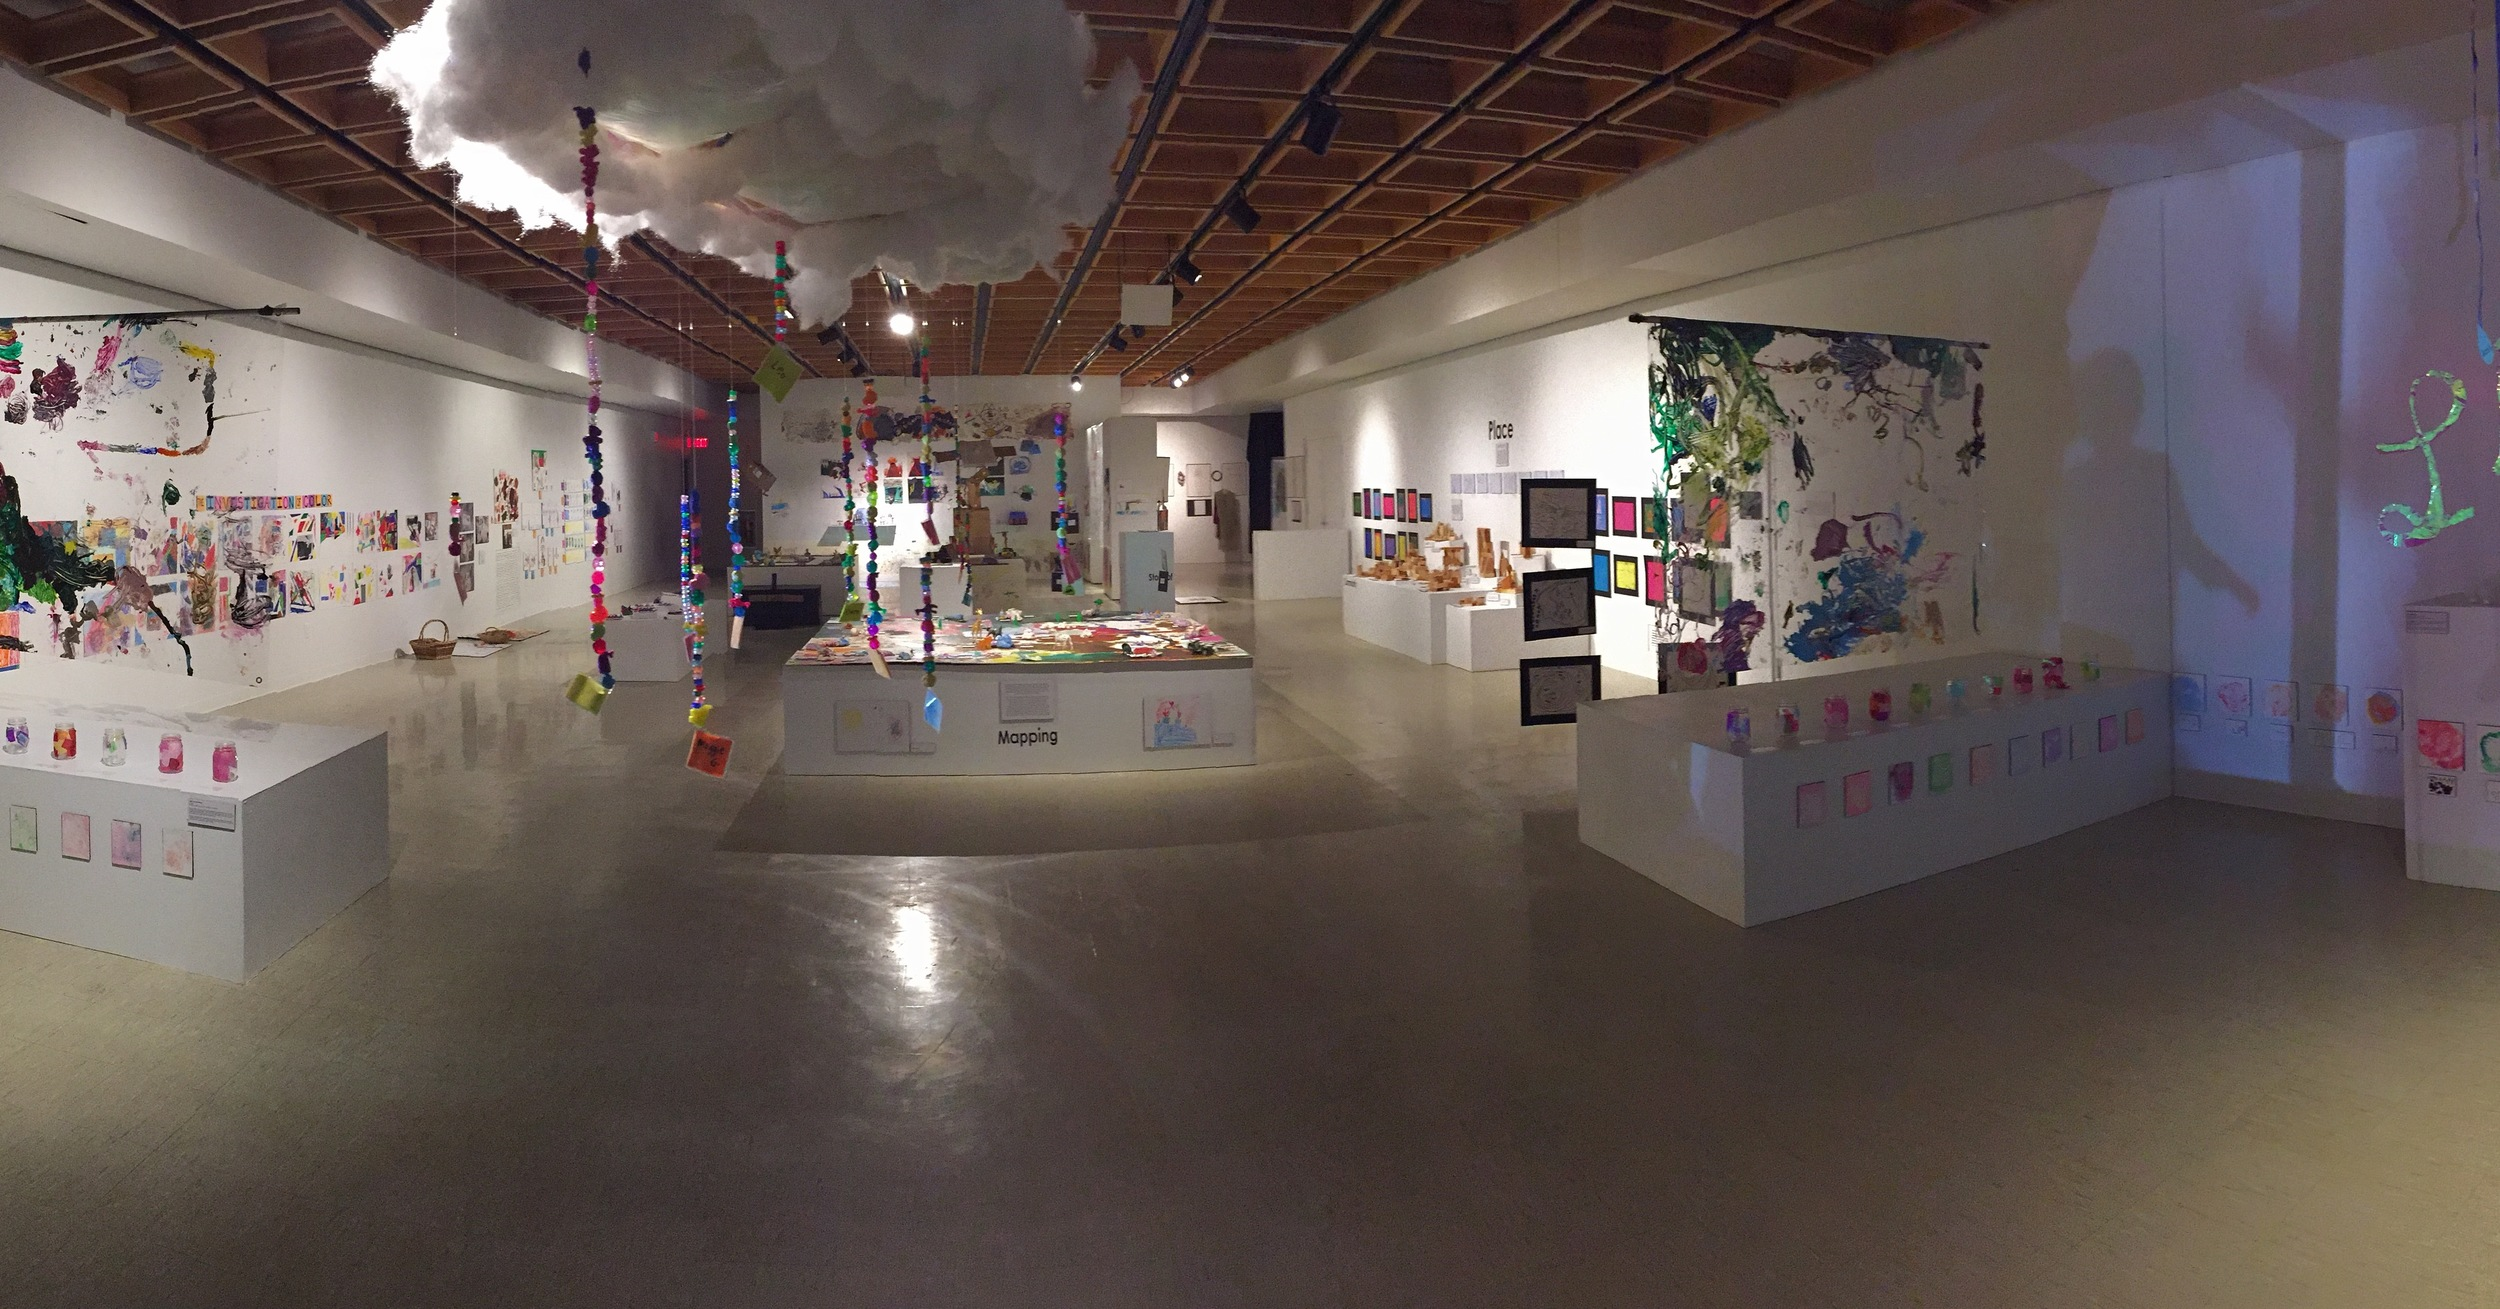 Saturday School Art Exhibit (fall 2015)